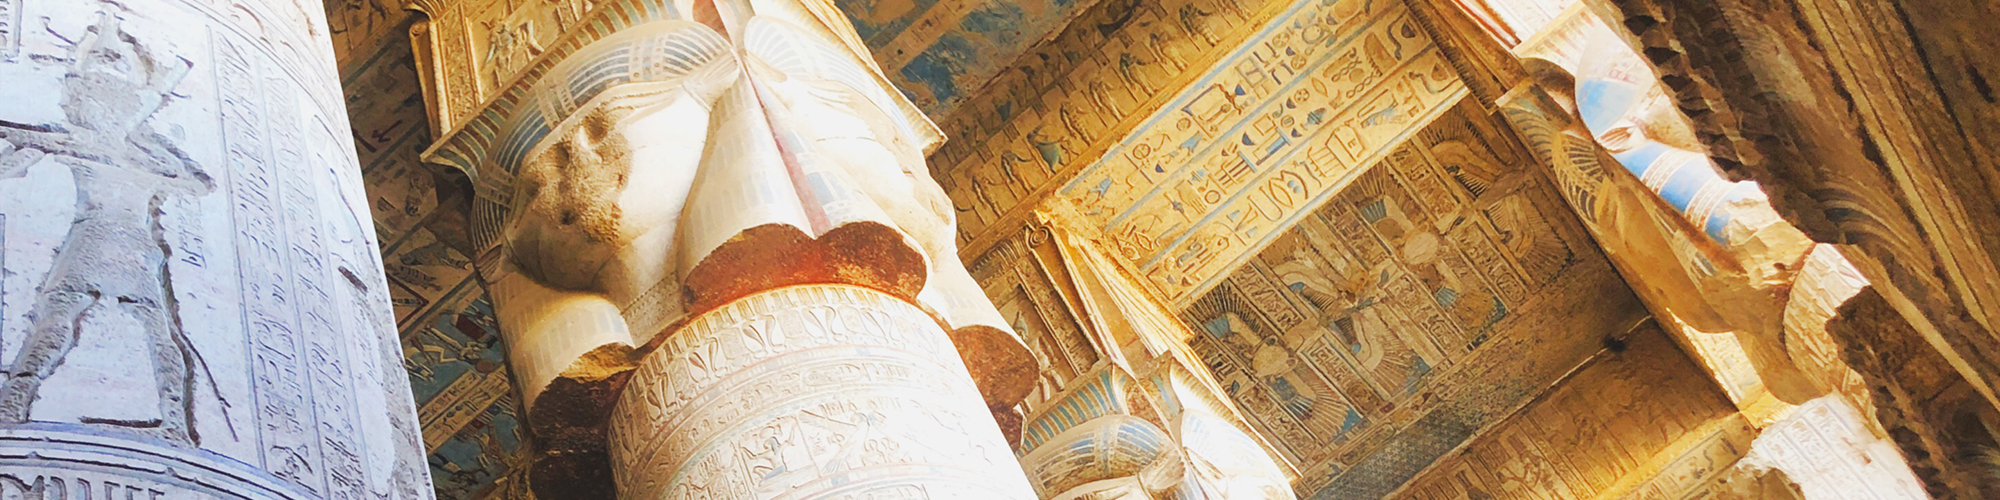 Trips to Dendera and Abydos Temples From Marsa Alam - Tours From Hurghada